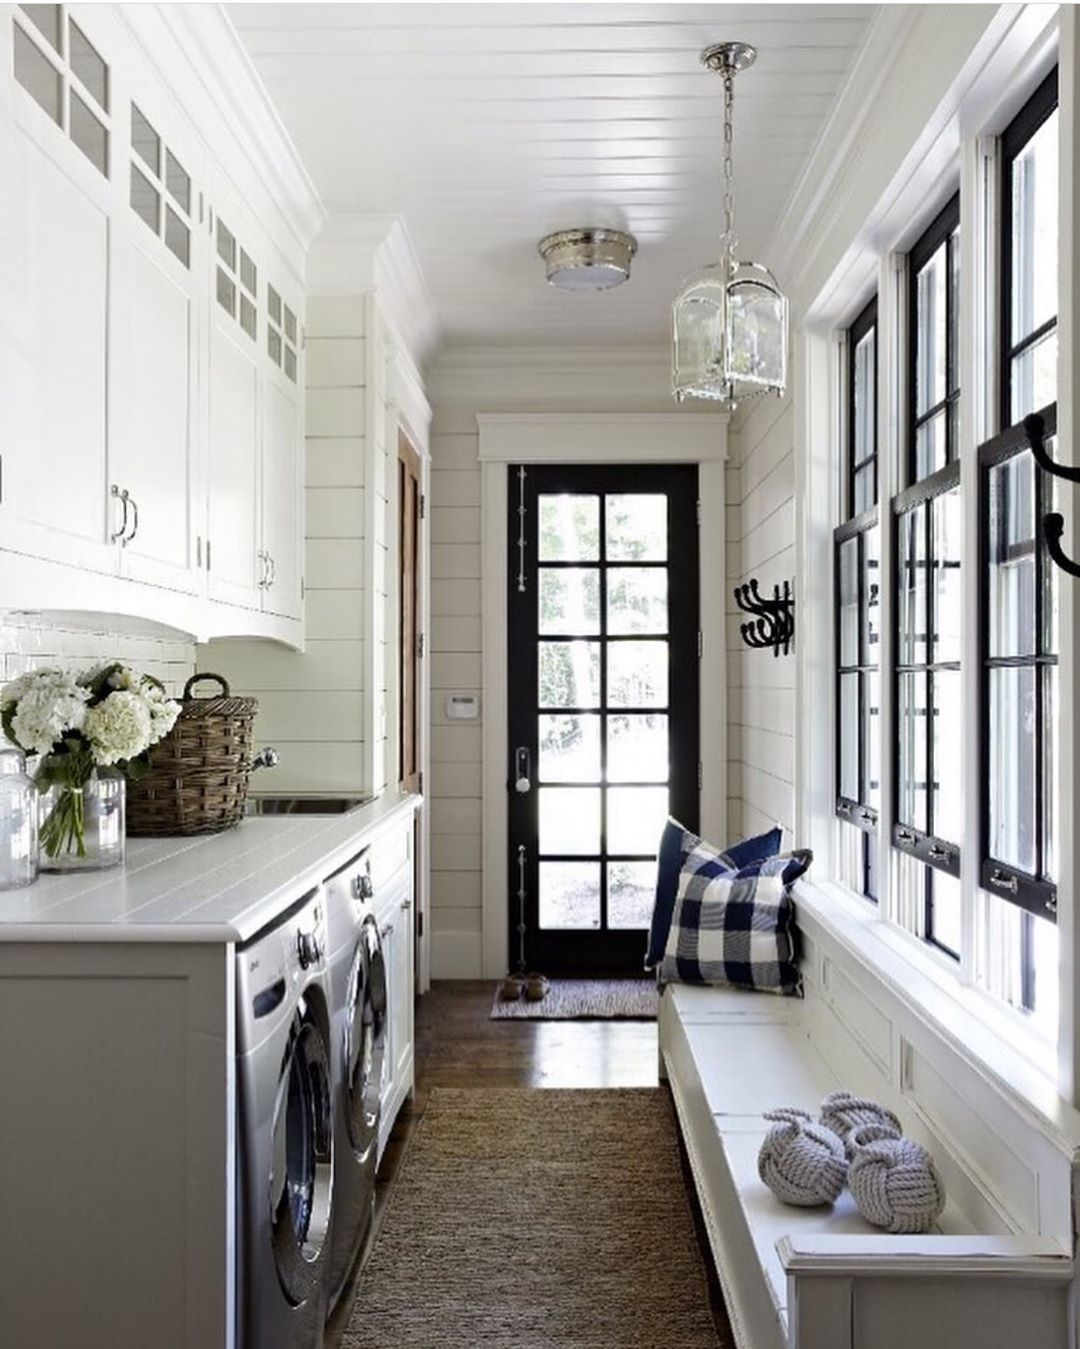 Becki Owens On Instagram One Of My Favorite Laundry Mud Rooms More Mudroom Inspo On White Laundry Rooms Farmhouse Laundry Room Mud Room Laundry Room Combo